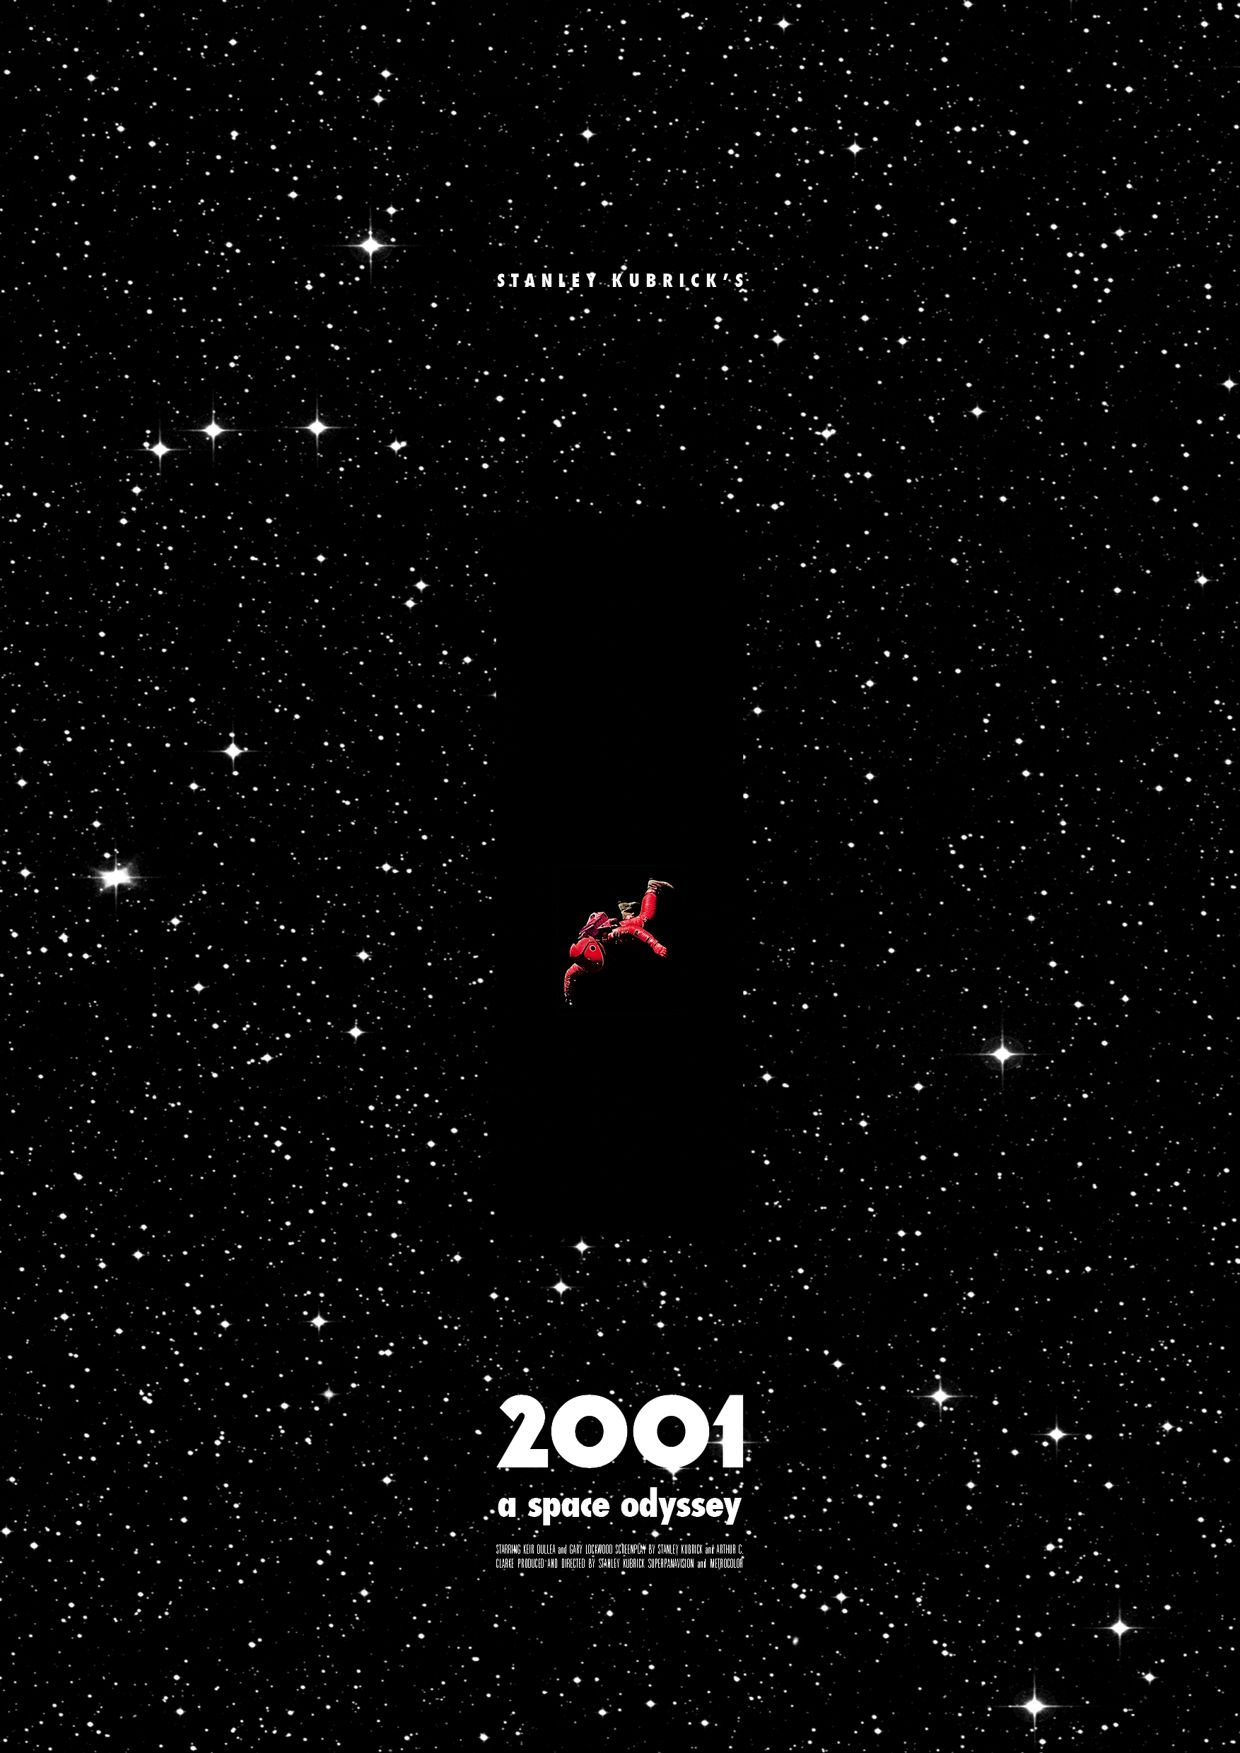 2001 A Space Odyssey Follow The Podcast Www Twitter Com Screen Wolf And Www Facebook Com Sc Movie Posters Movie Posters Minimalist Alternative Movie Posters